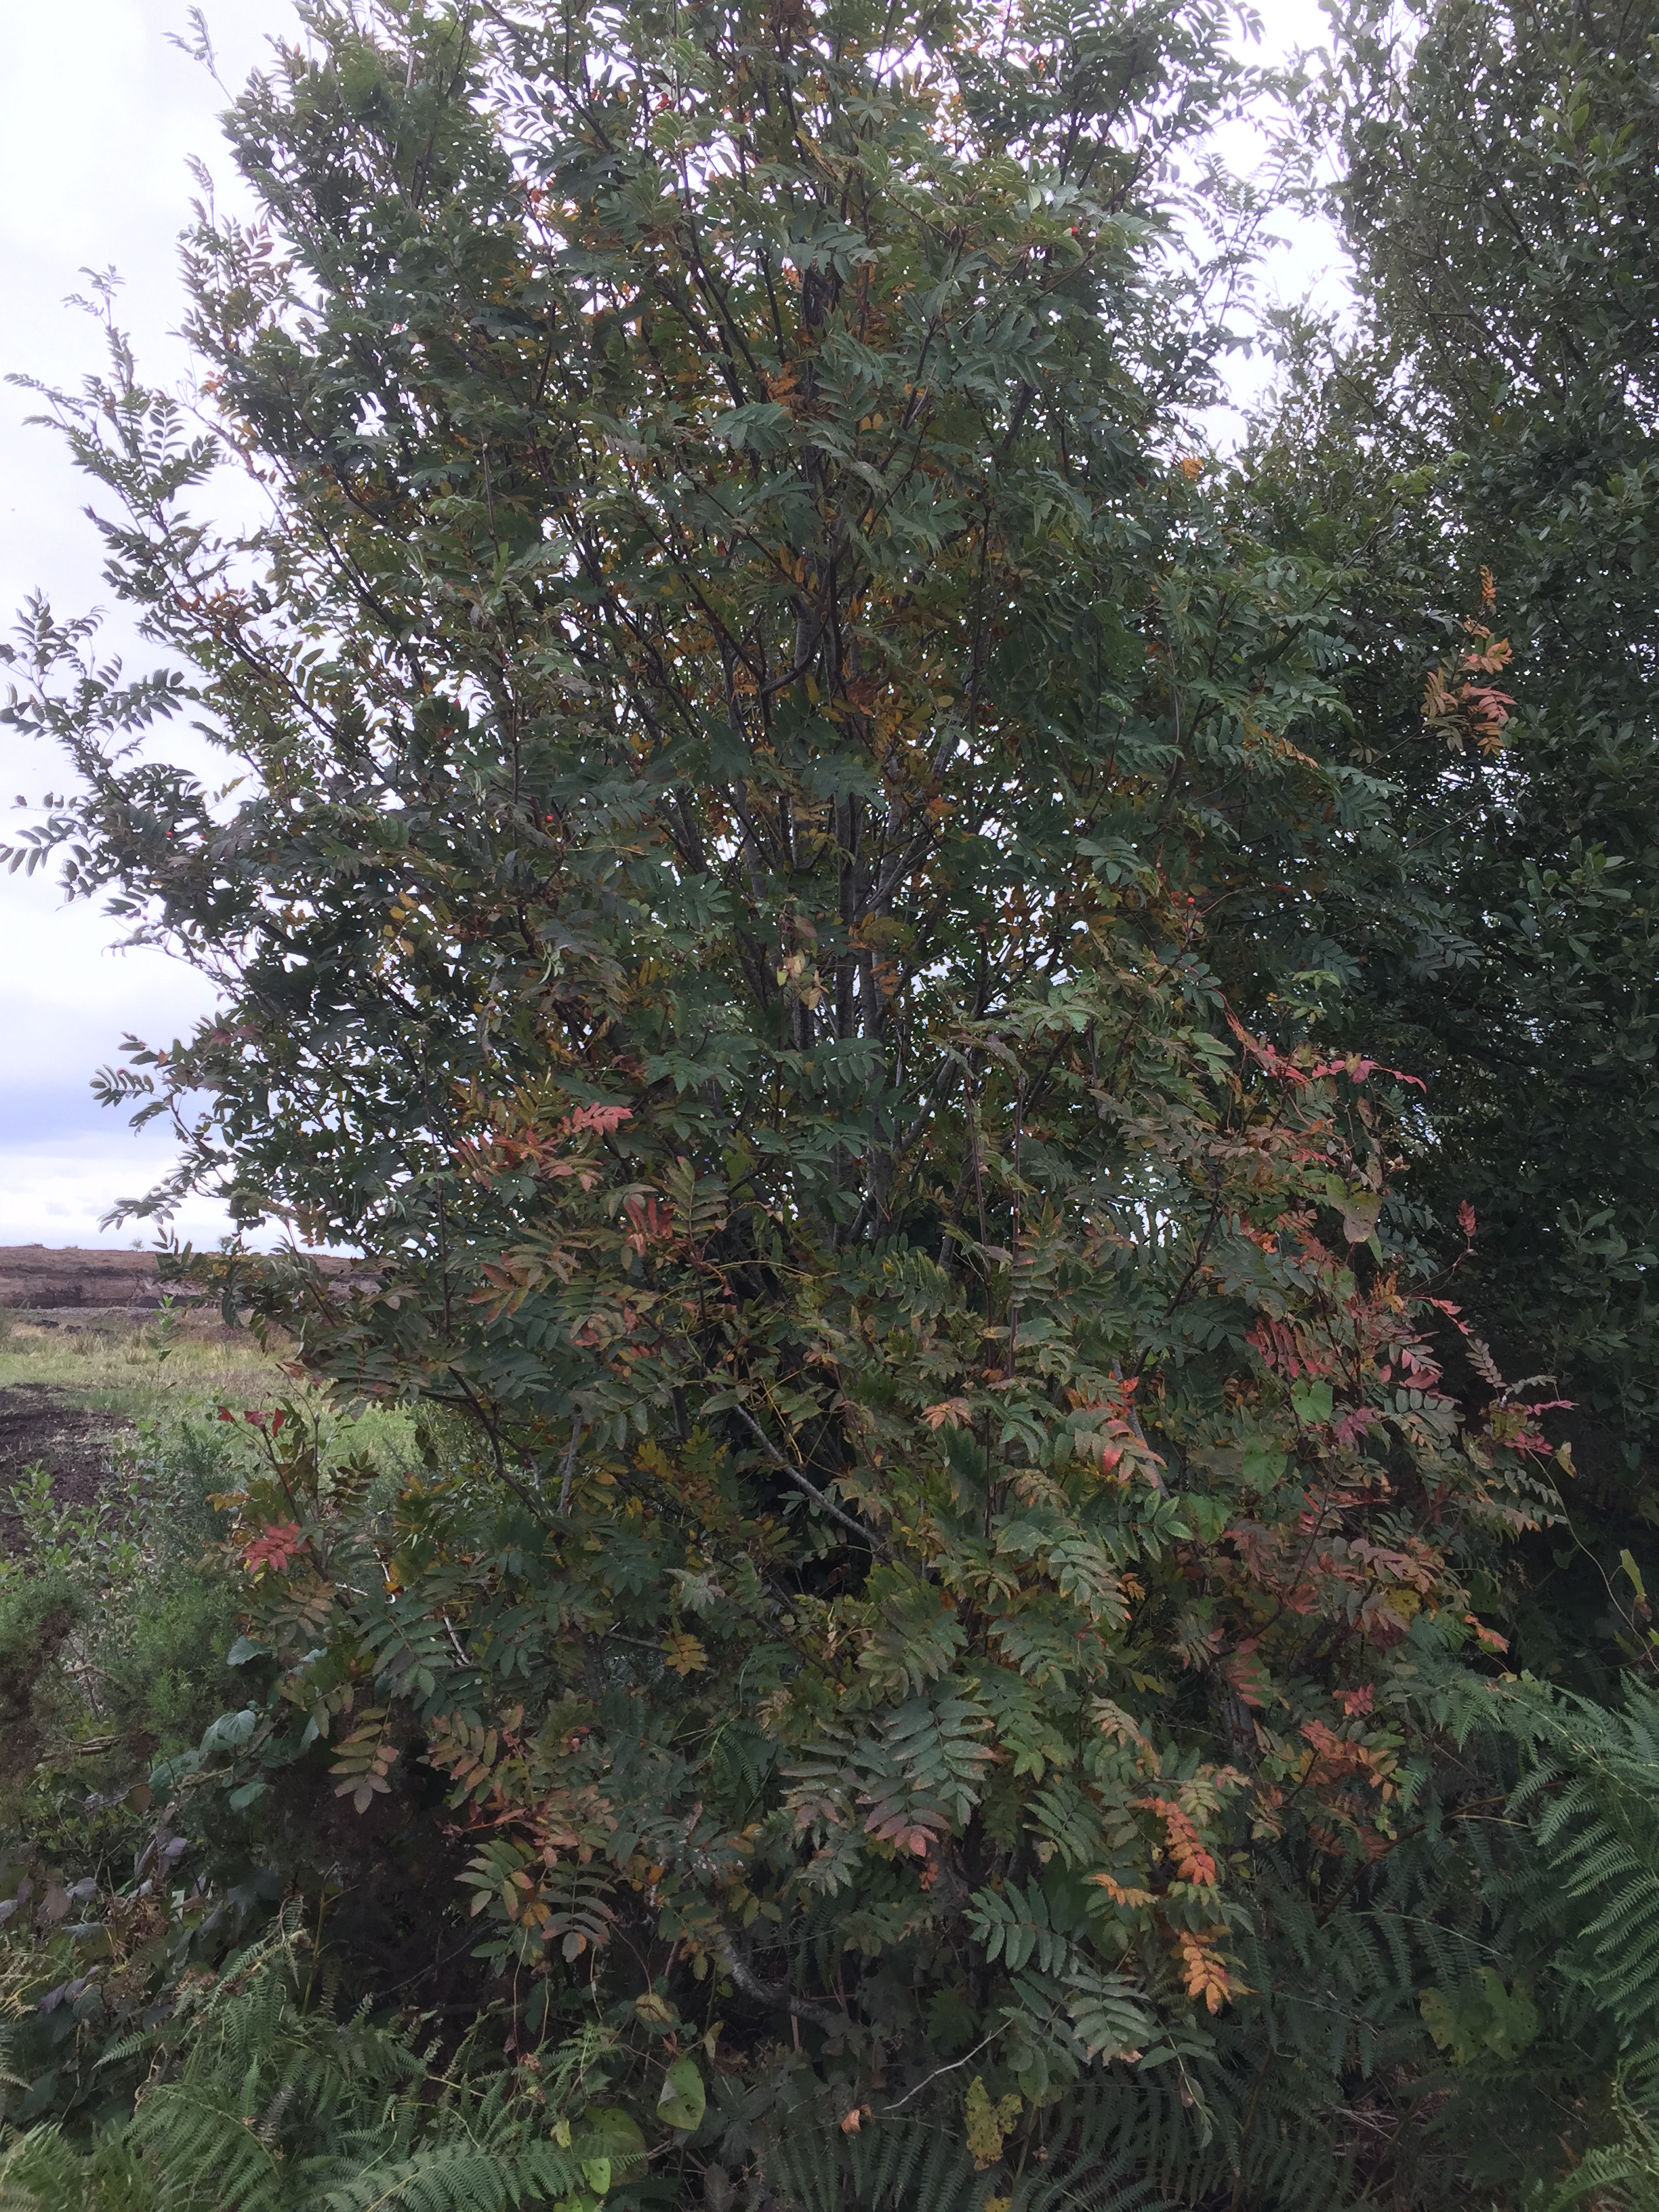 Rowan trees beginning to turn orange. These trees are considered useful in folklore for keeping witches away from our homes. Every garden should have one!